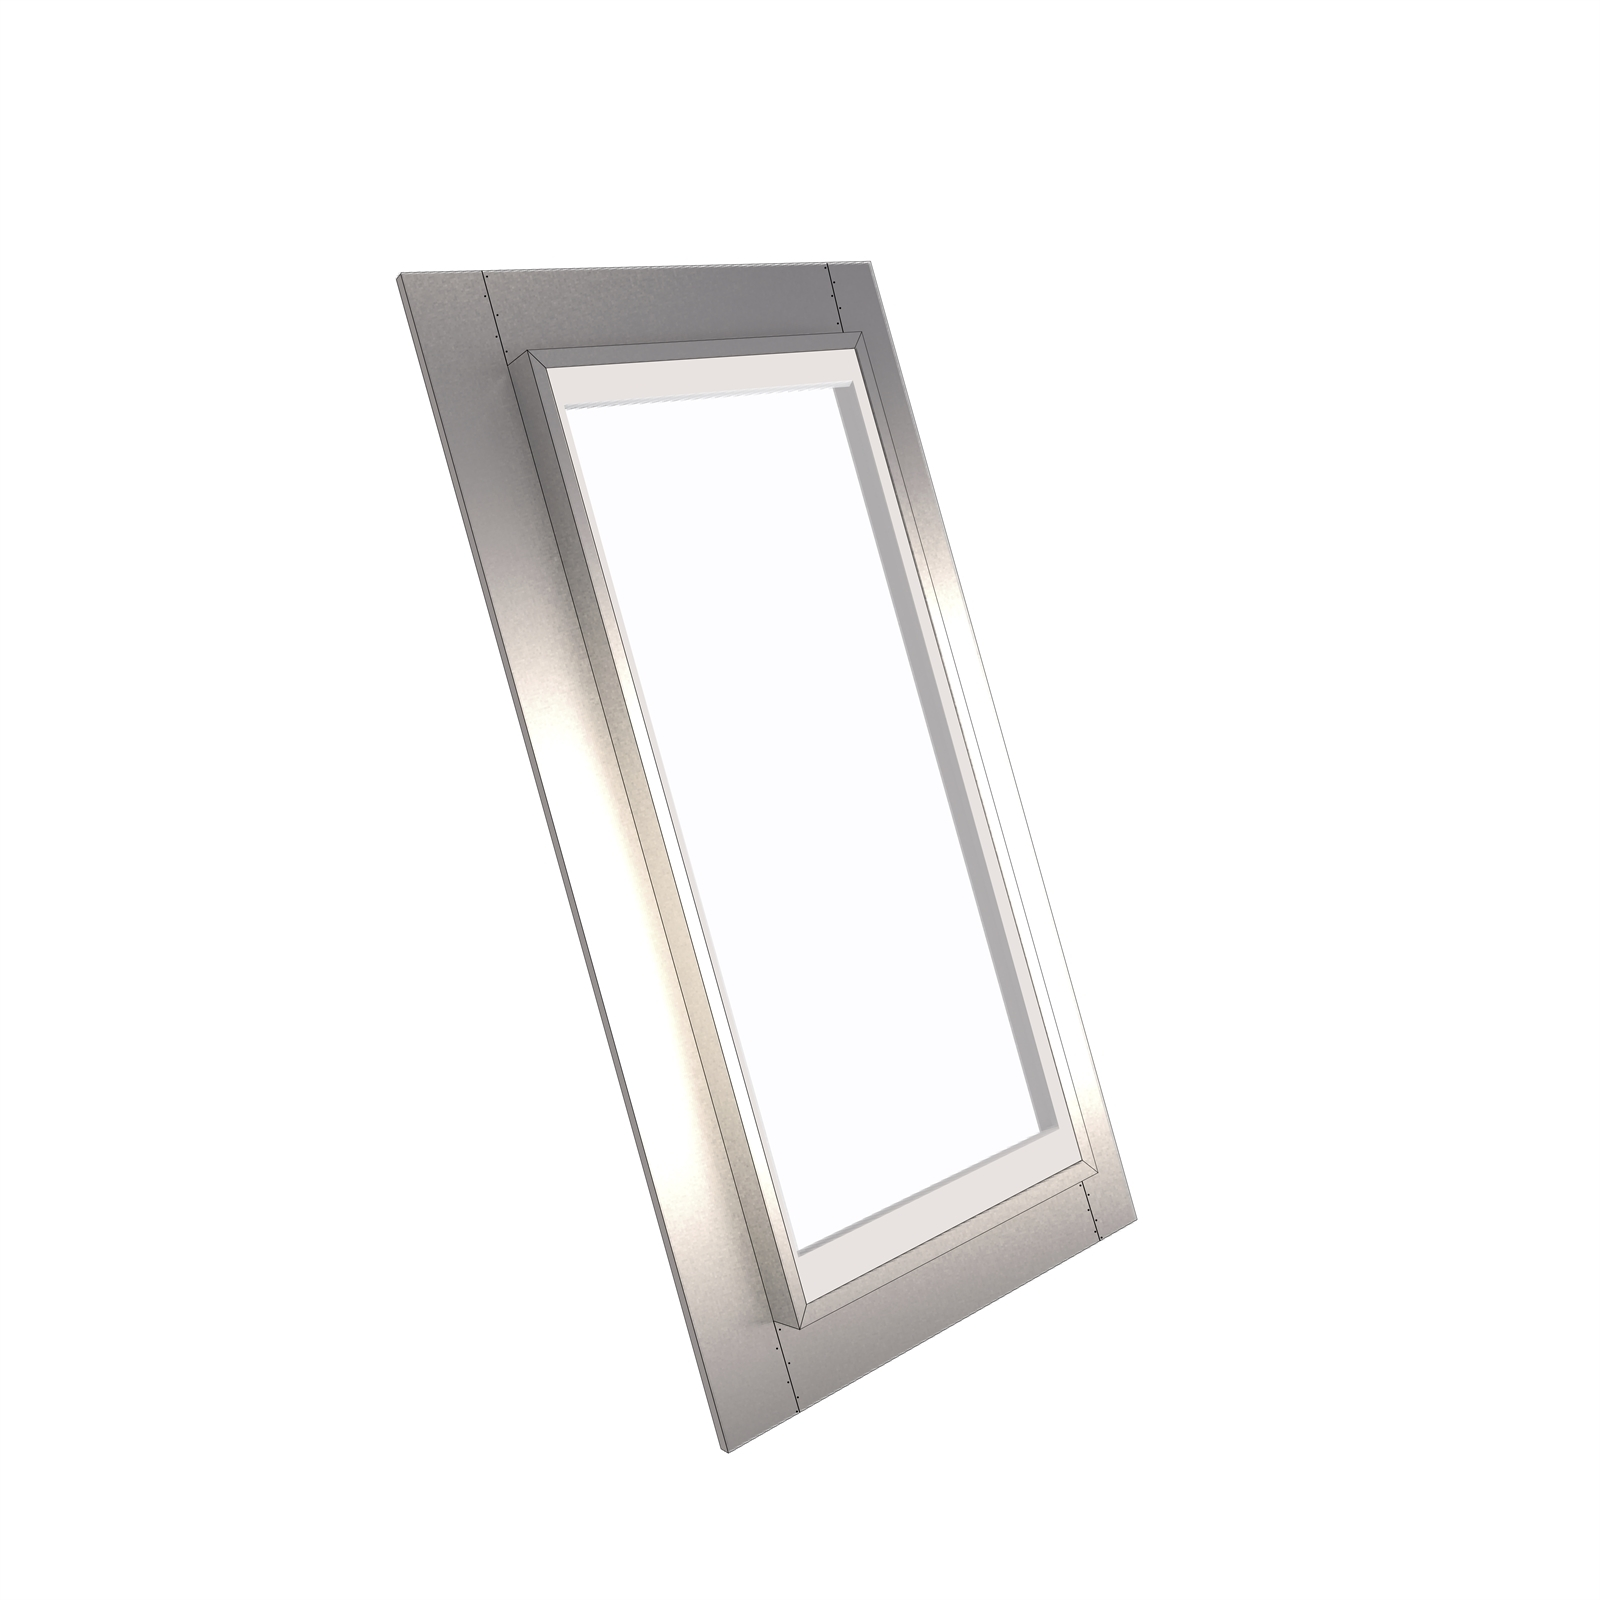 EzyLite 800 x 550mm  Fixed Roof Window for Tiled Roof - Smart Glass